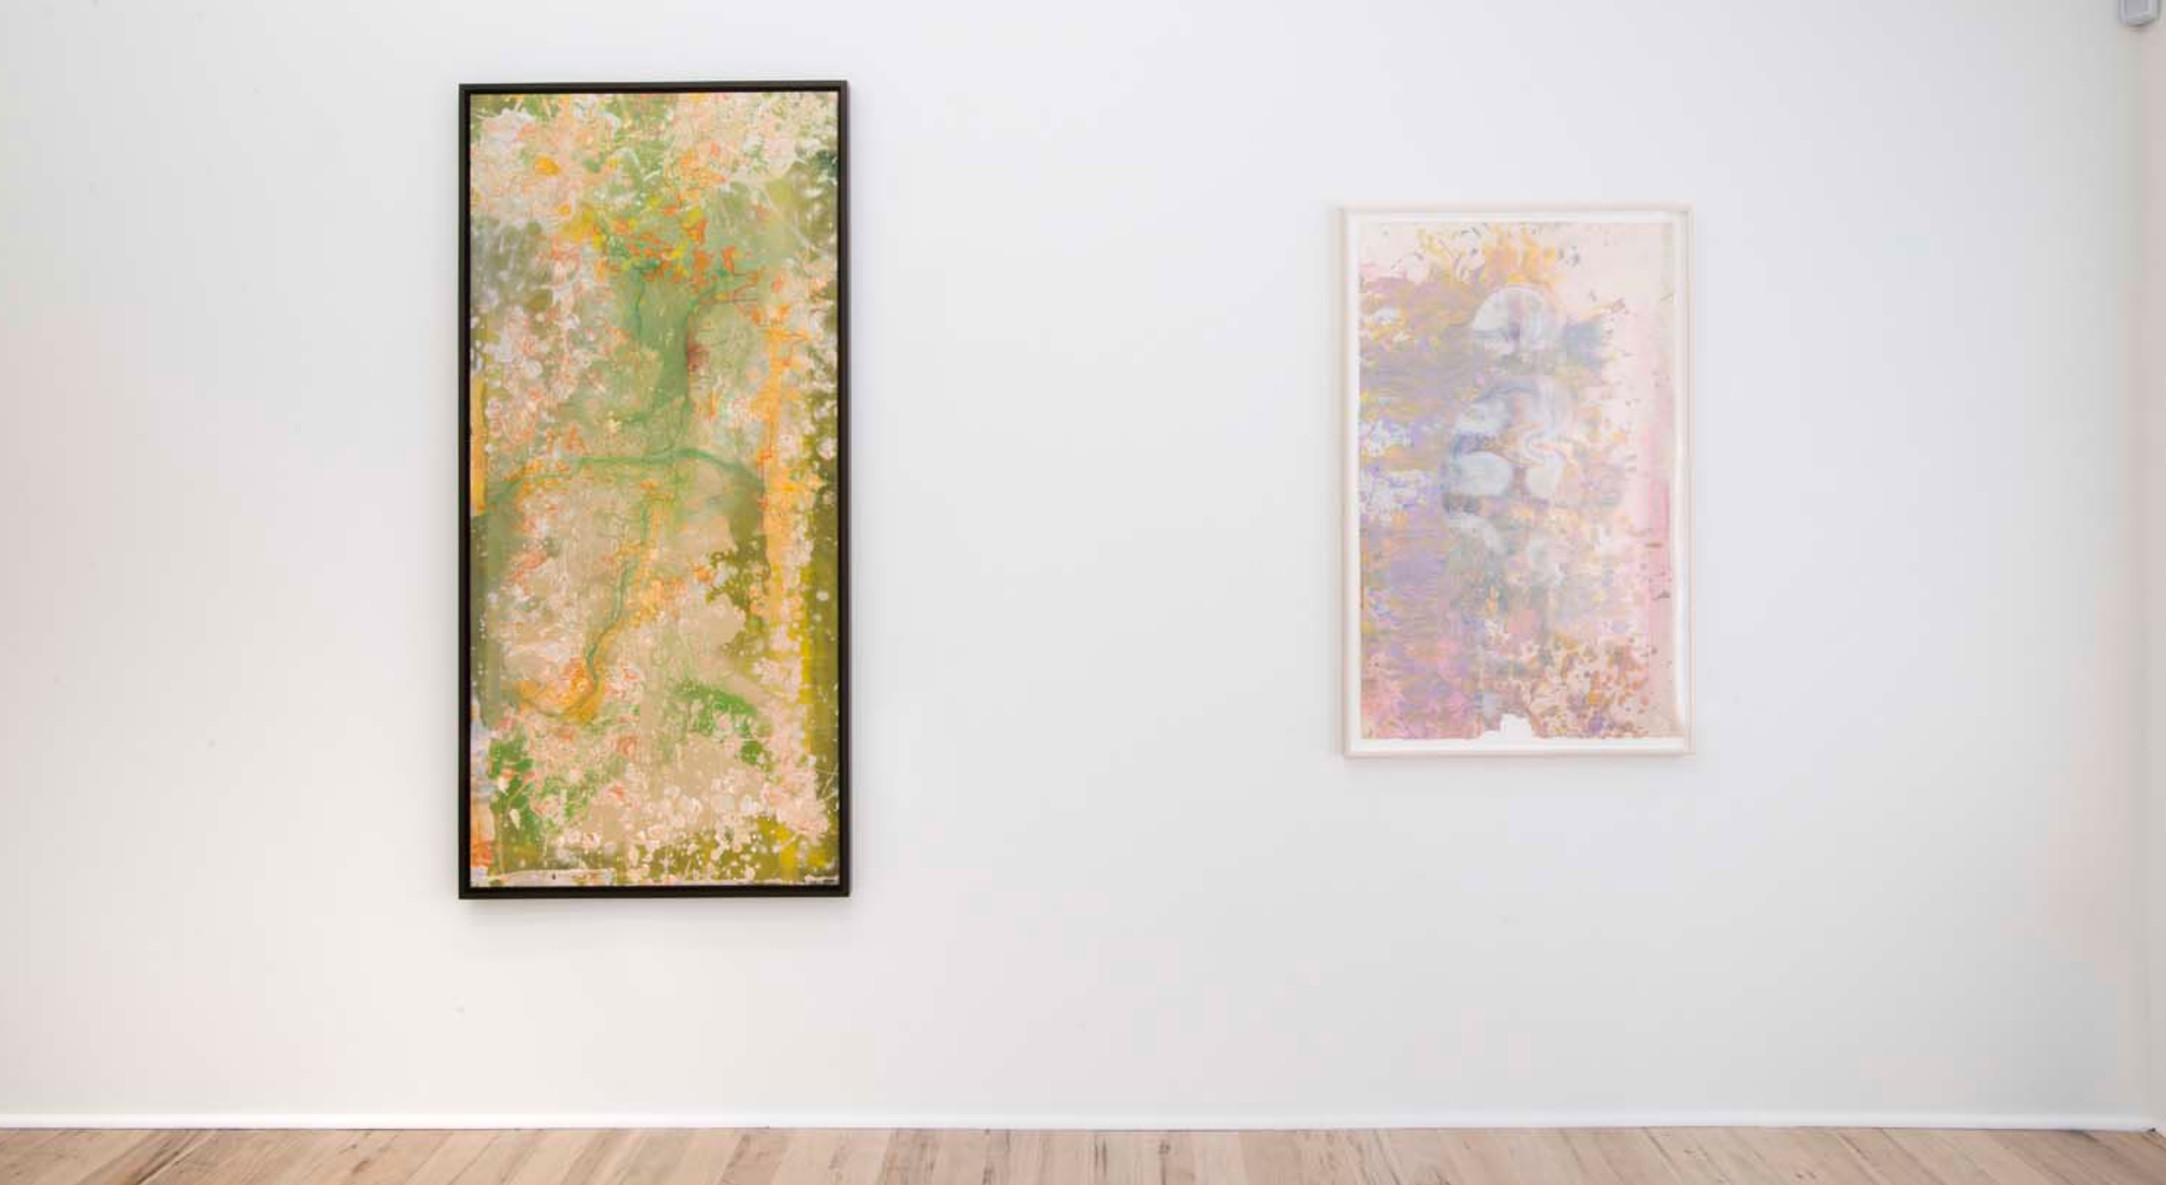 Installation view of Frank Bowling, Metropolitanblooms at Hales Project Room New York, 2017